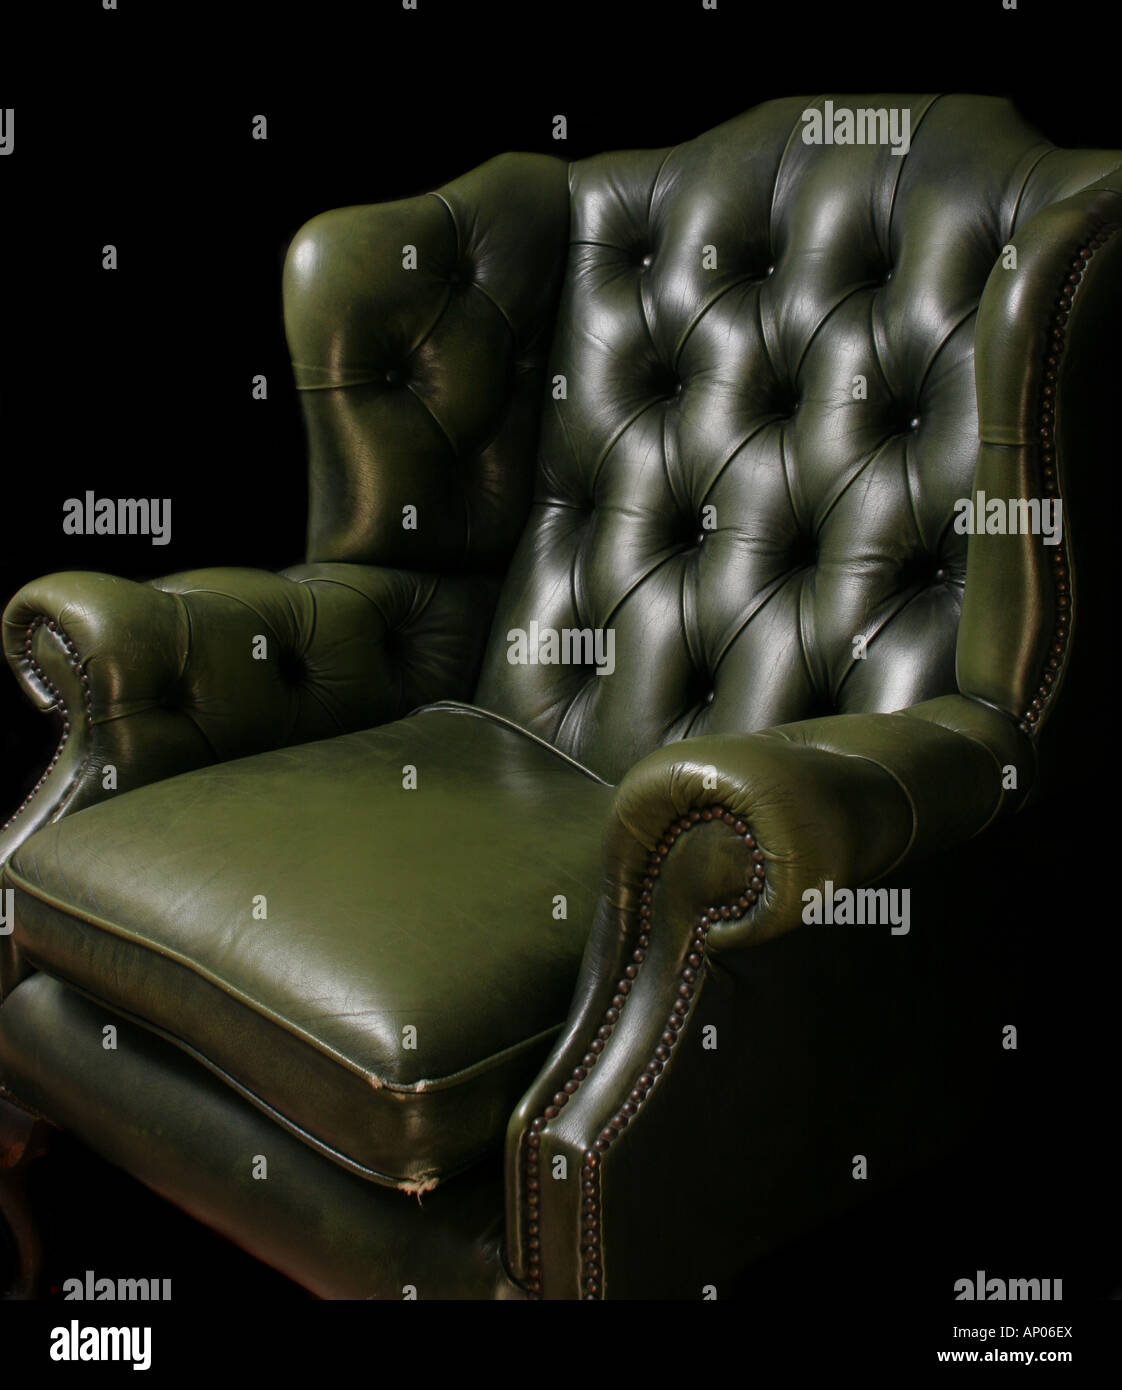 Antique Green Leather Chesterfield Armchair Stock Photo 15632017